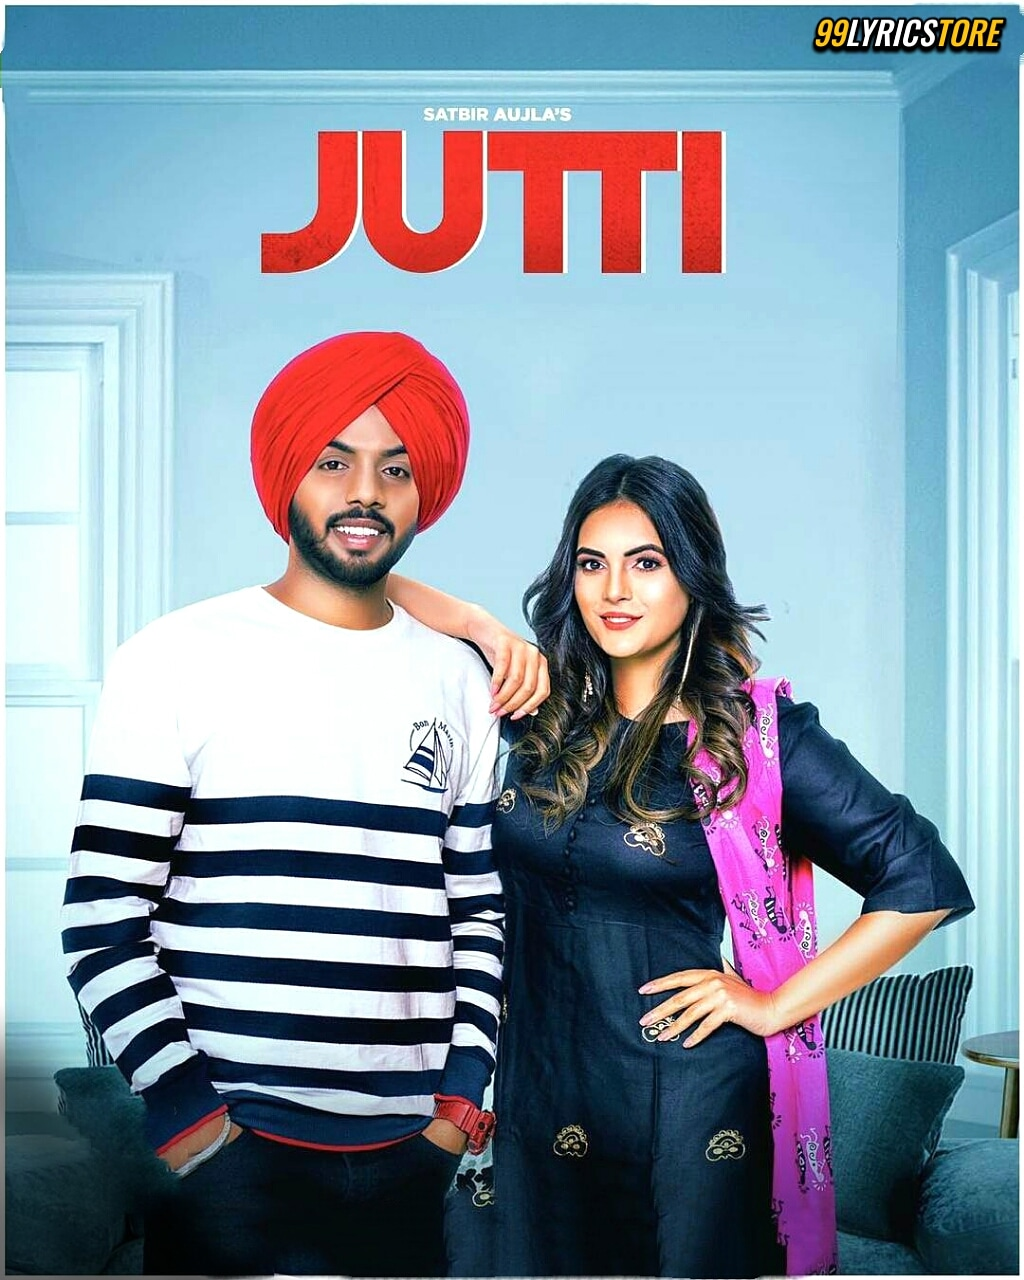 Jutti Lyrics Sung by Satbit Aujla